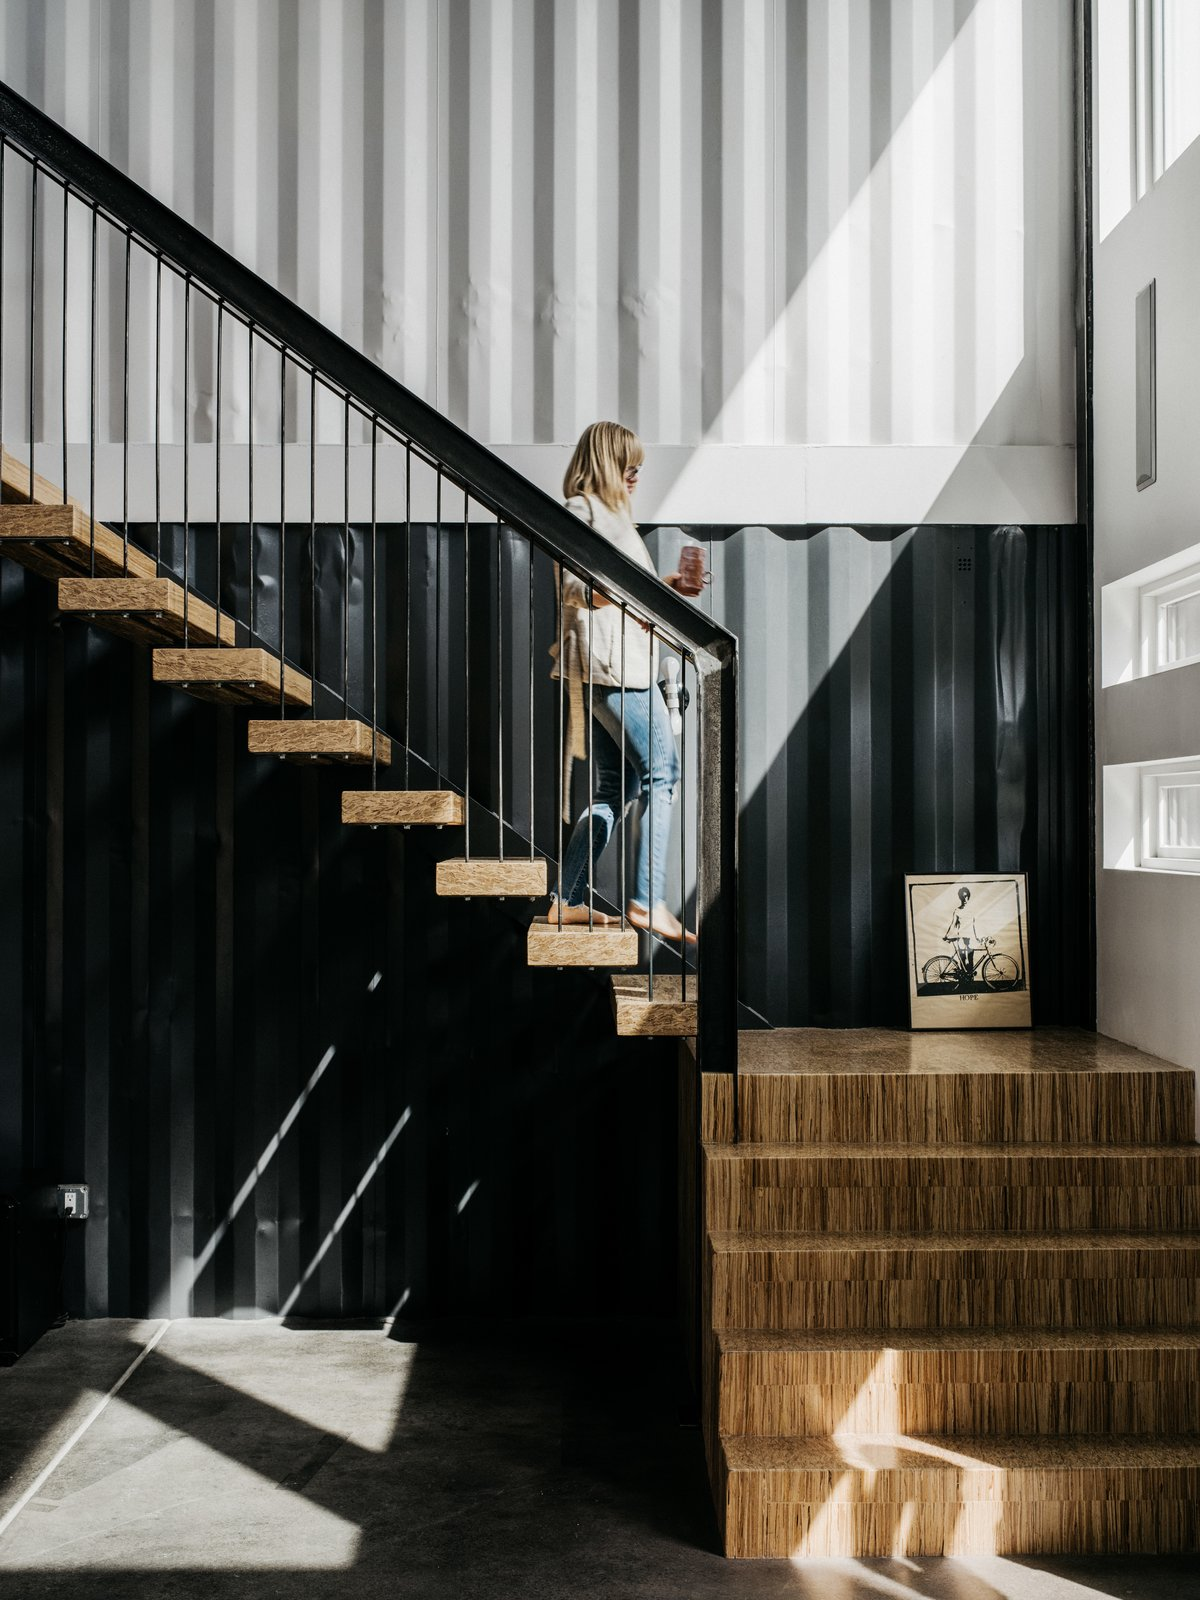 Staircase, Metal Railing, and Wood Tread In 2014, while recovering from a work-related injury, Denver-area firefighter Regan Foster started exploring the idea of shipping containers for a new house he was planning to build. Two years later, he and his wife, Libby, moved into a home made mostly of the giant metal bins, having done much of the work themselves. They share the residence with their year-old daughter, Evie, and Libby's mother.  Photos from A Colorado Firefighter Built His Own Shipping Container Home, and Found a New Calling Along the Way